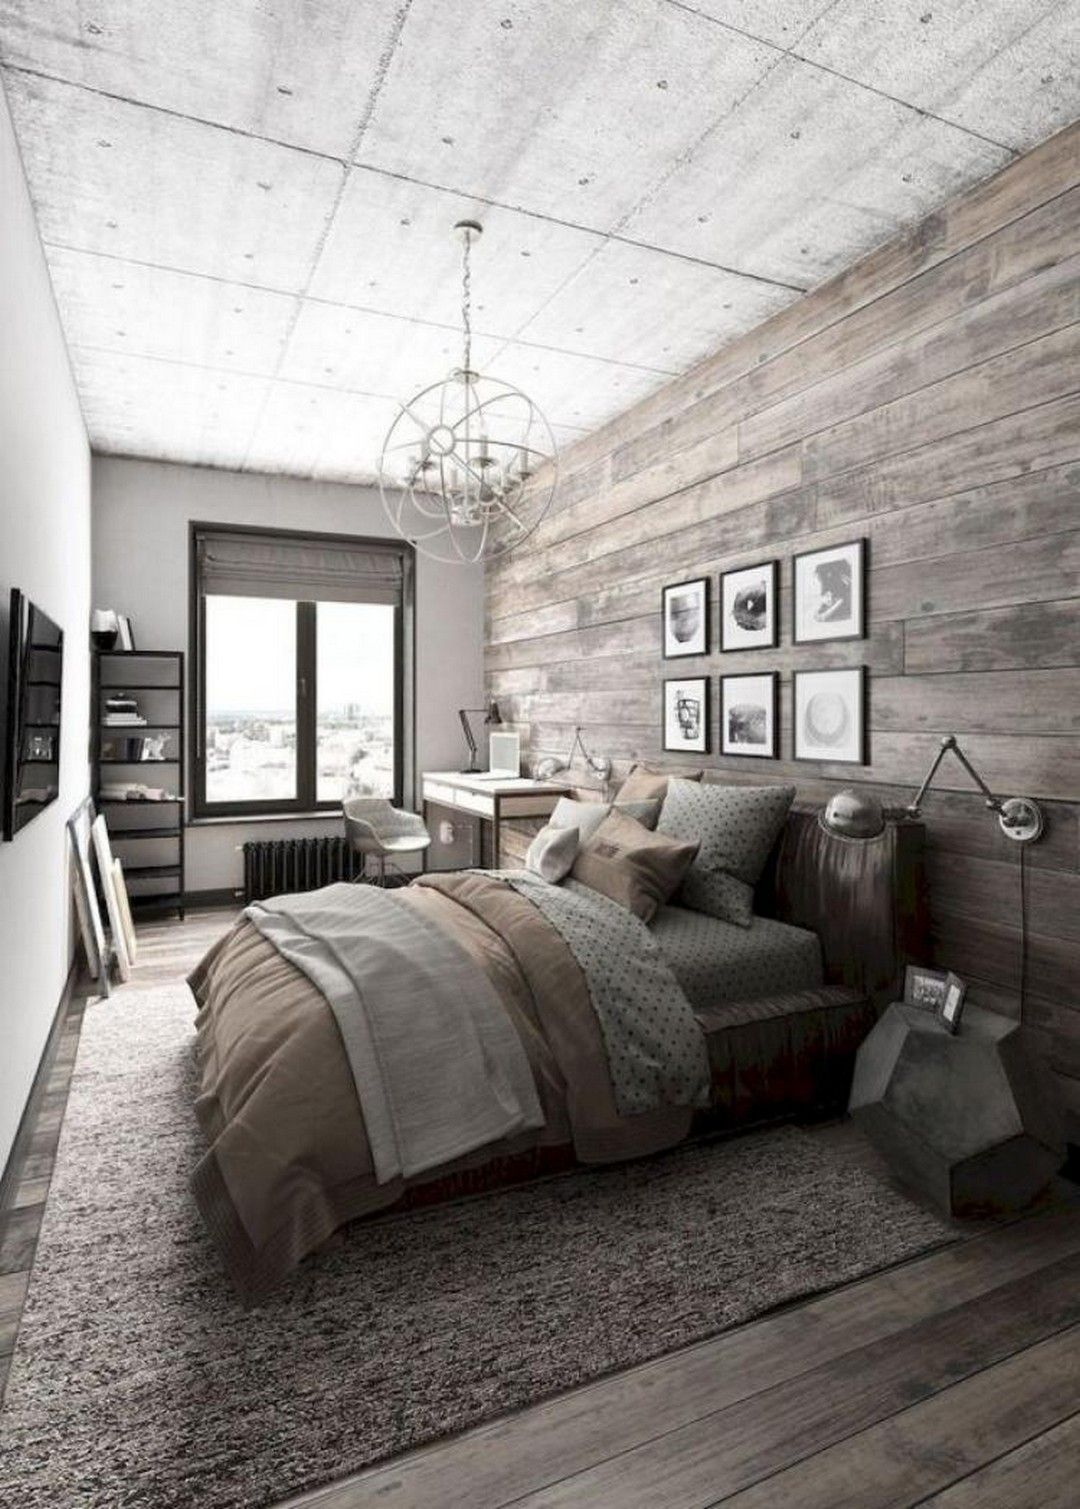 Holzverkleidung Wohnzimmer Elegant And Luxurious Farmhouse Art Designs To Improve In